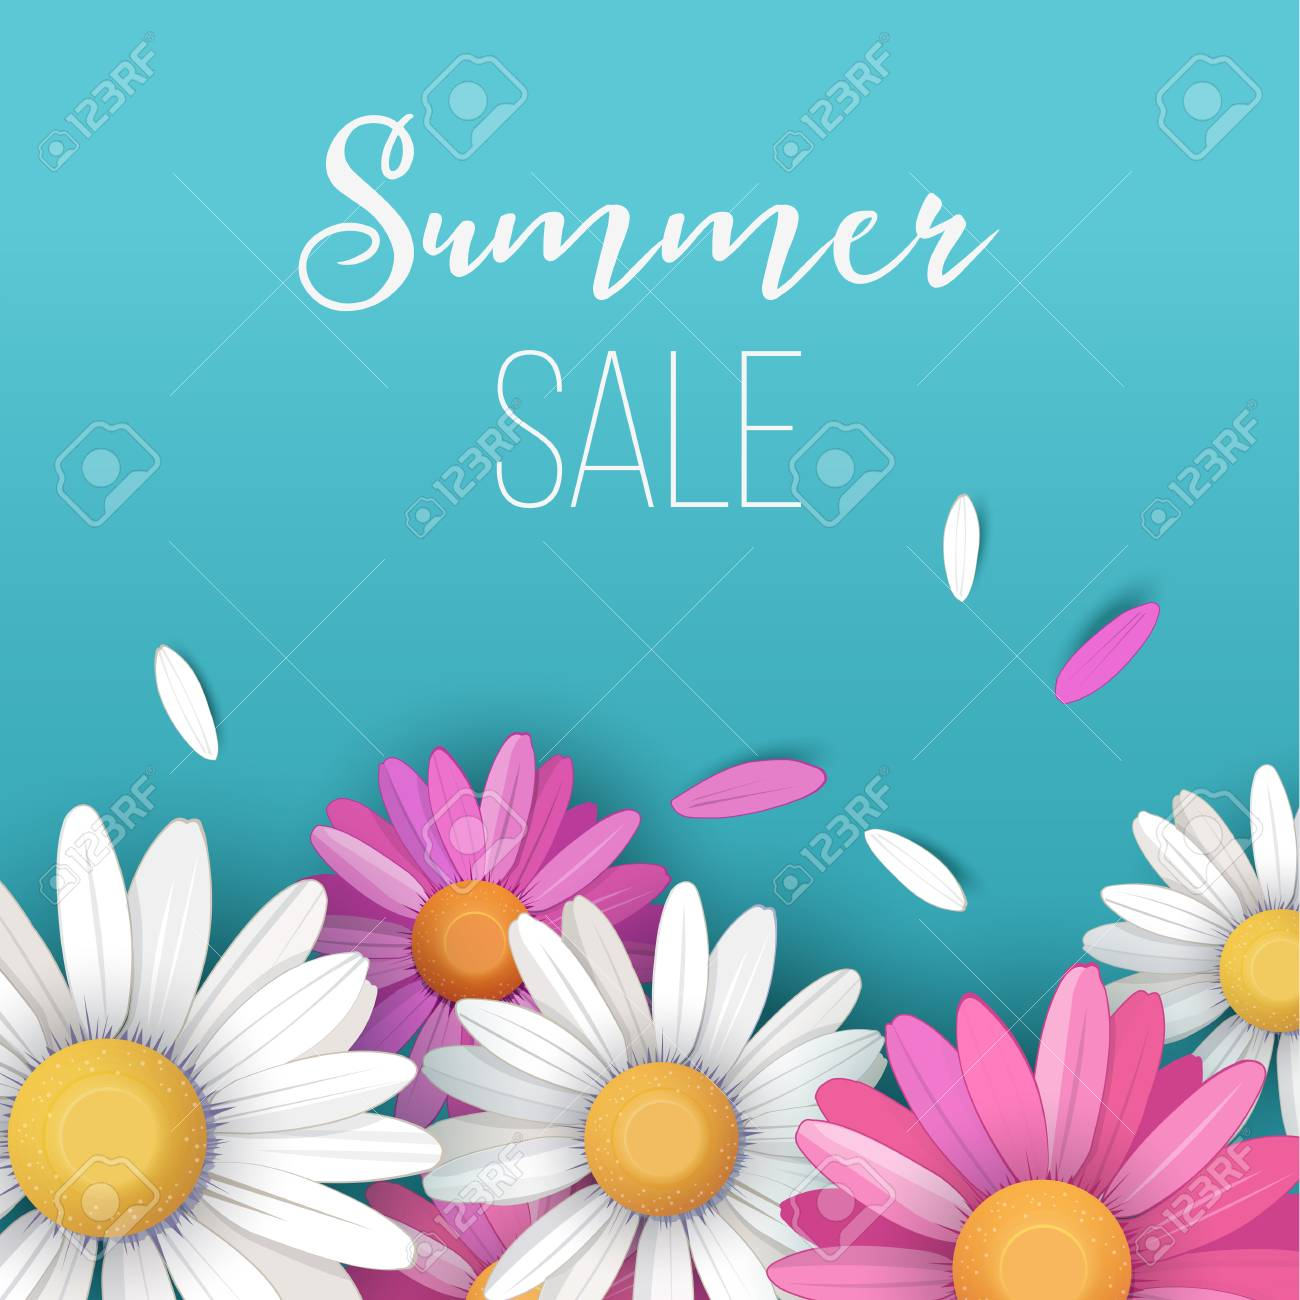 Summer sale background with colorful daisy flowers and petals summer sale background with colorful daisy flowers and petals on turquoise background vector illustration stock izmirmasajfo Images